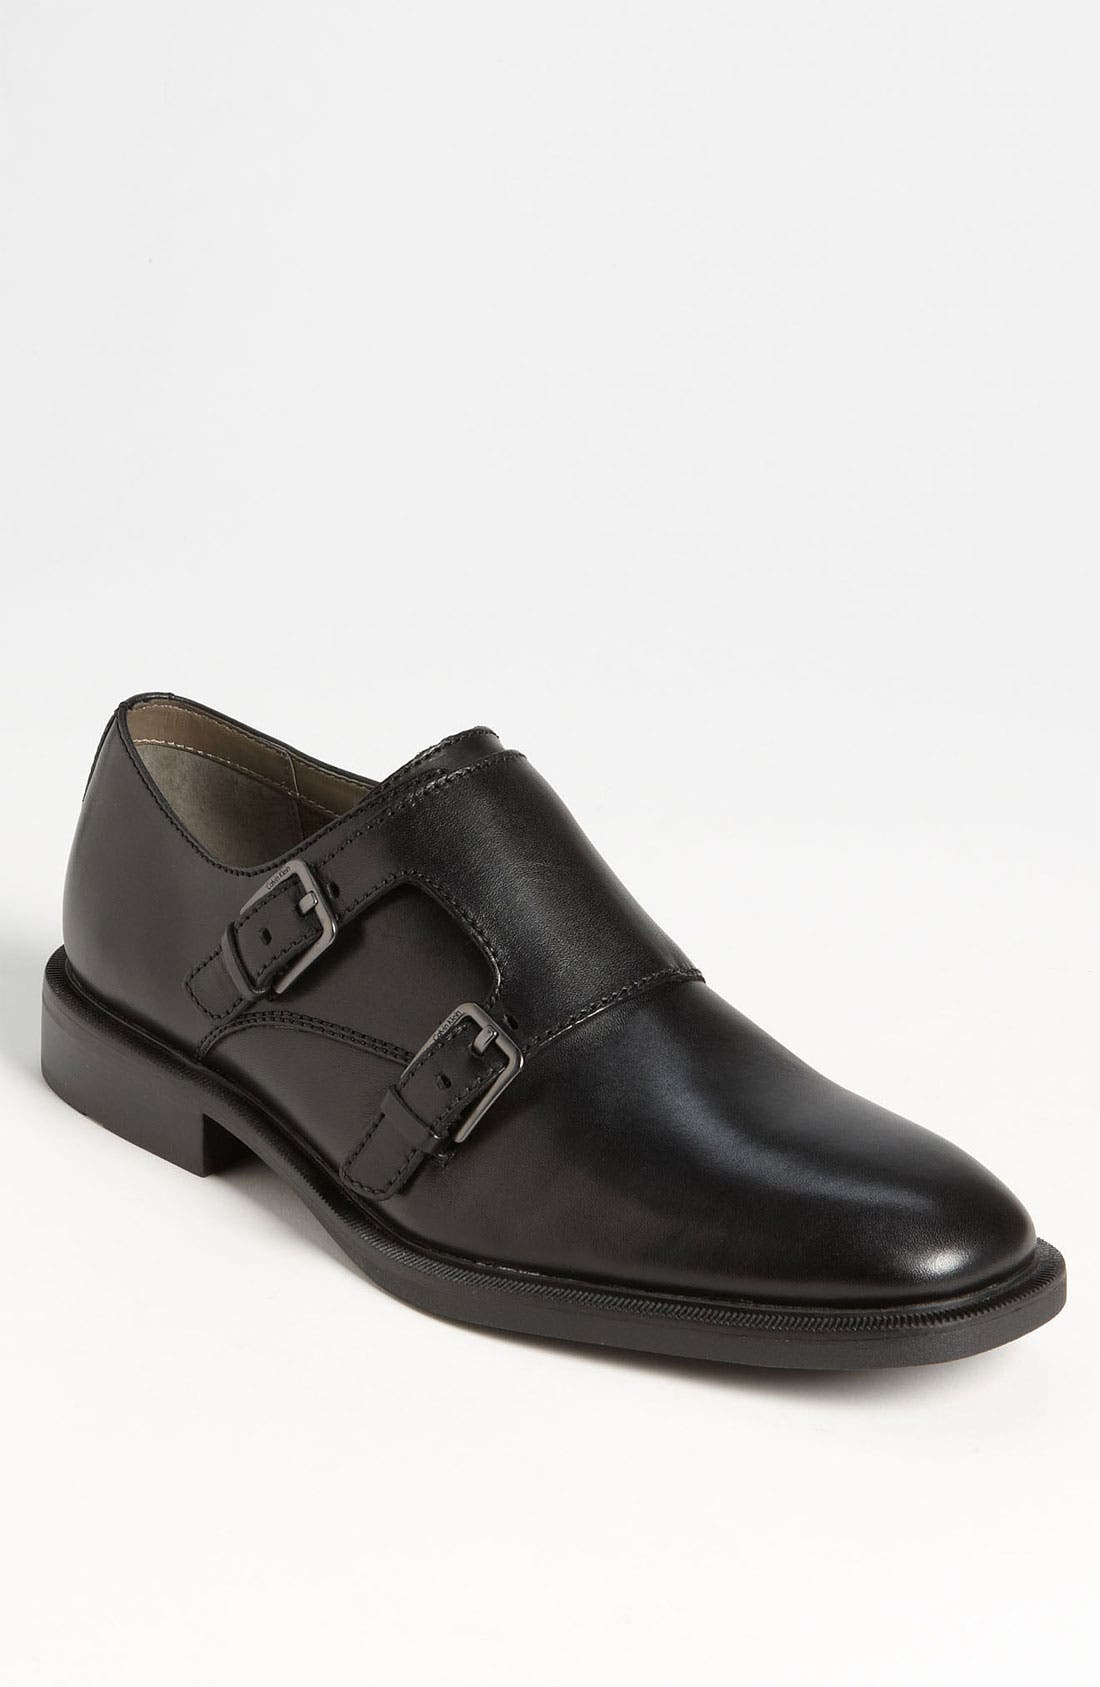 Alternate Image 1 Selected - Calvin Klein 'Russel' Double Monk Strap Slip-On